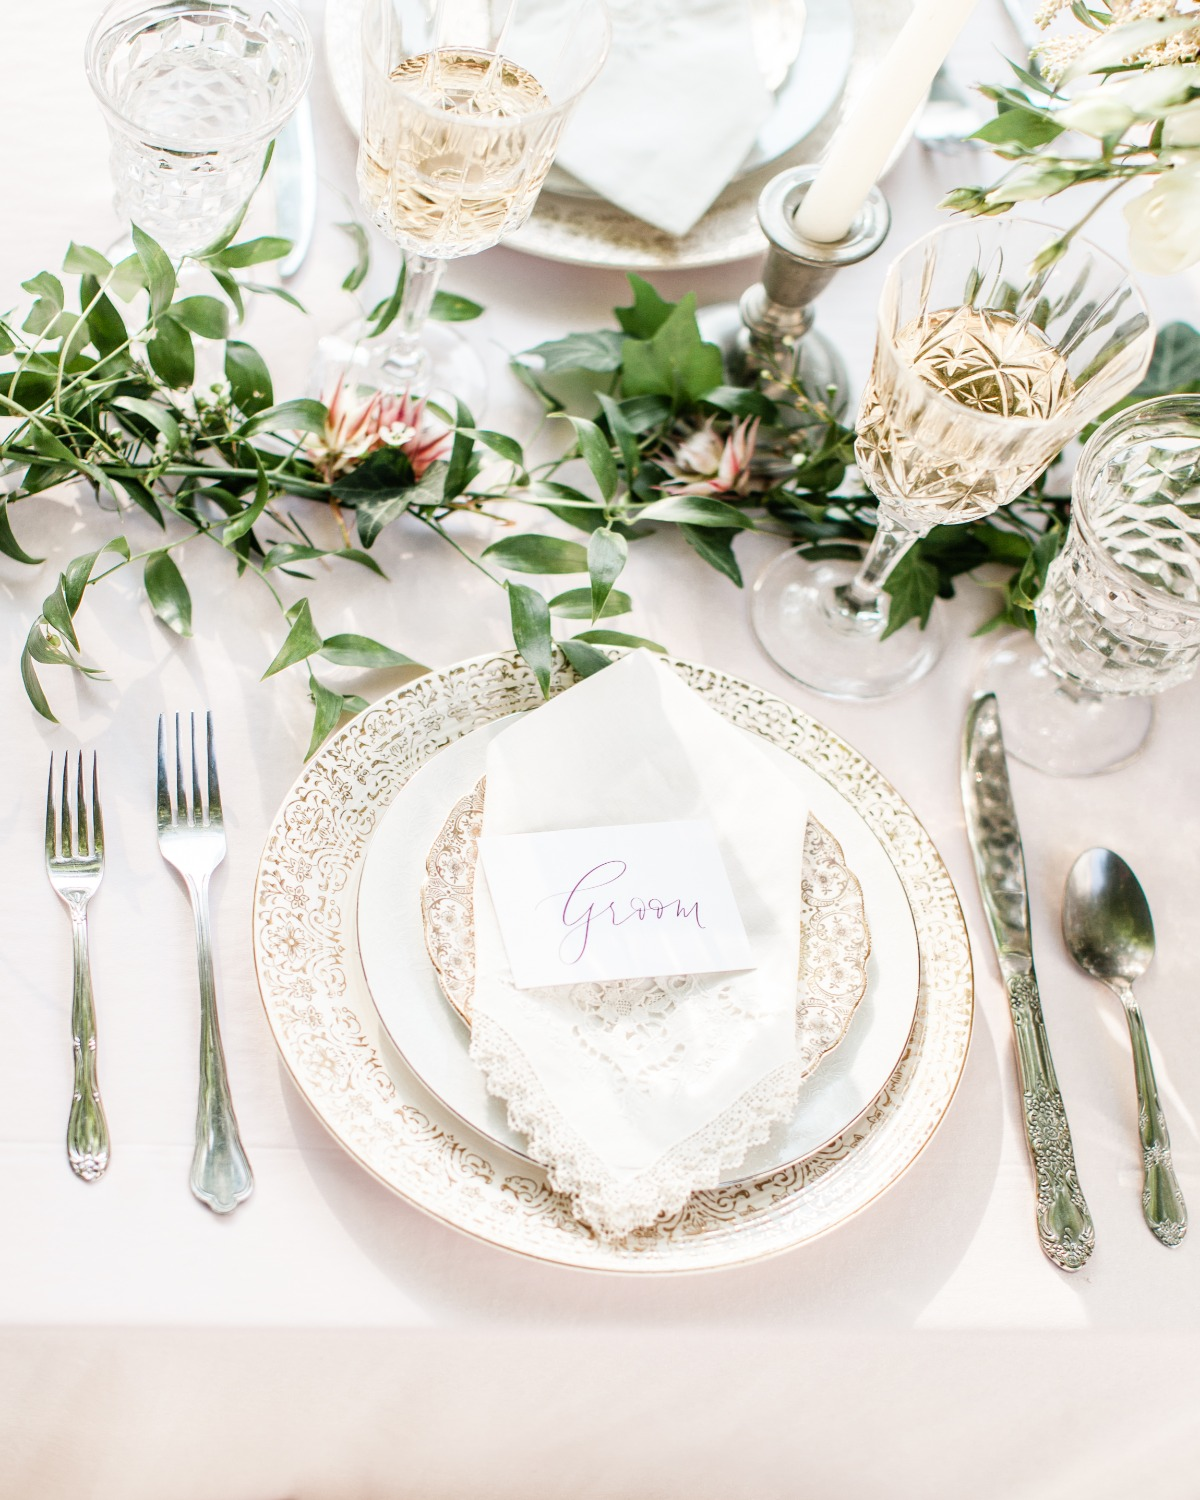 white and gold accented wedding place setting